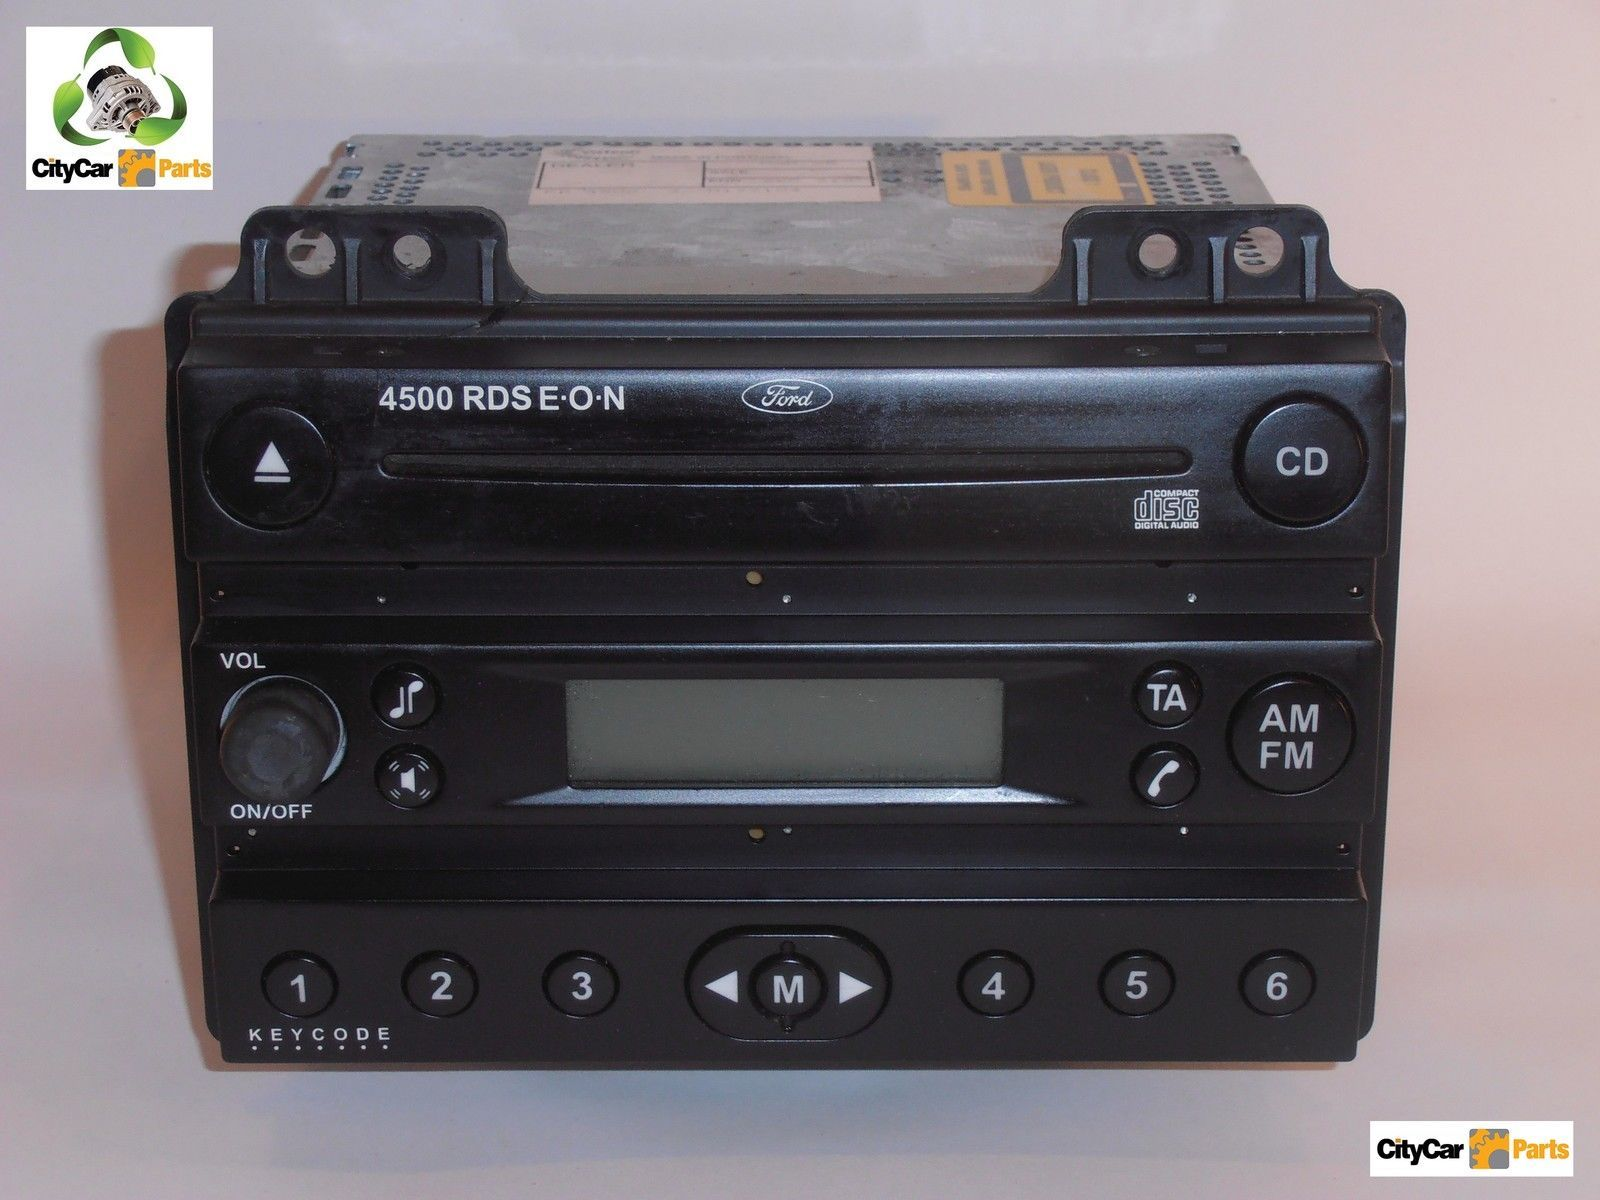 Ford Fiesta Car Radio Code Home Service